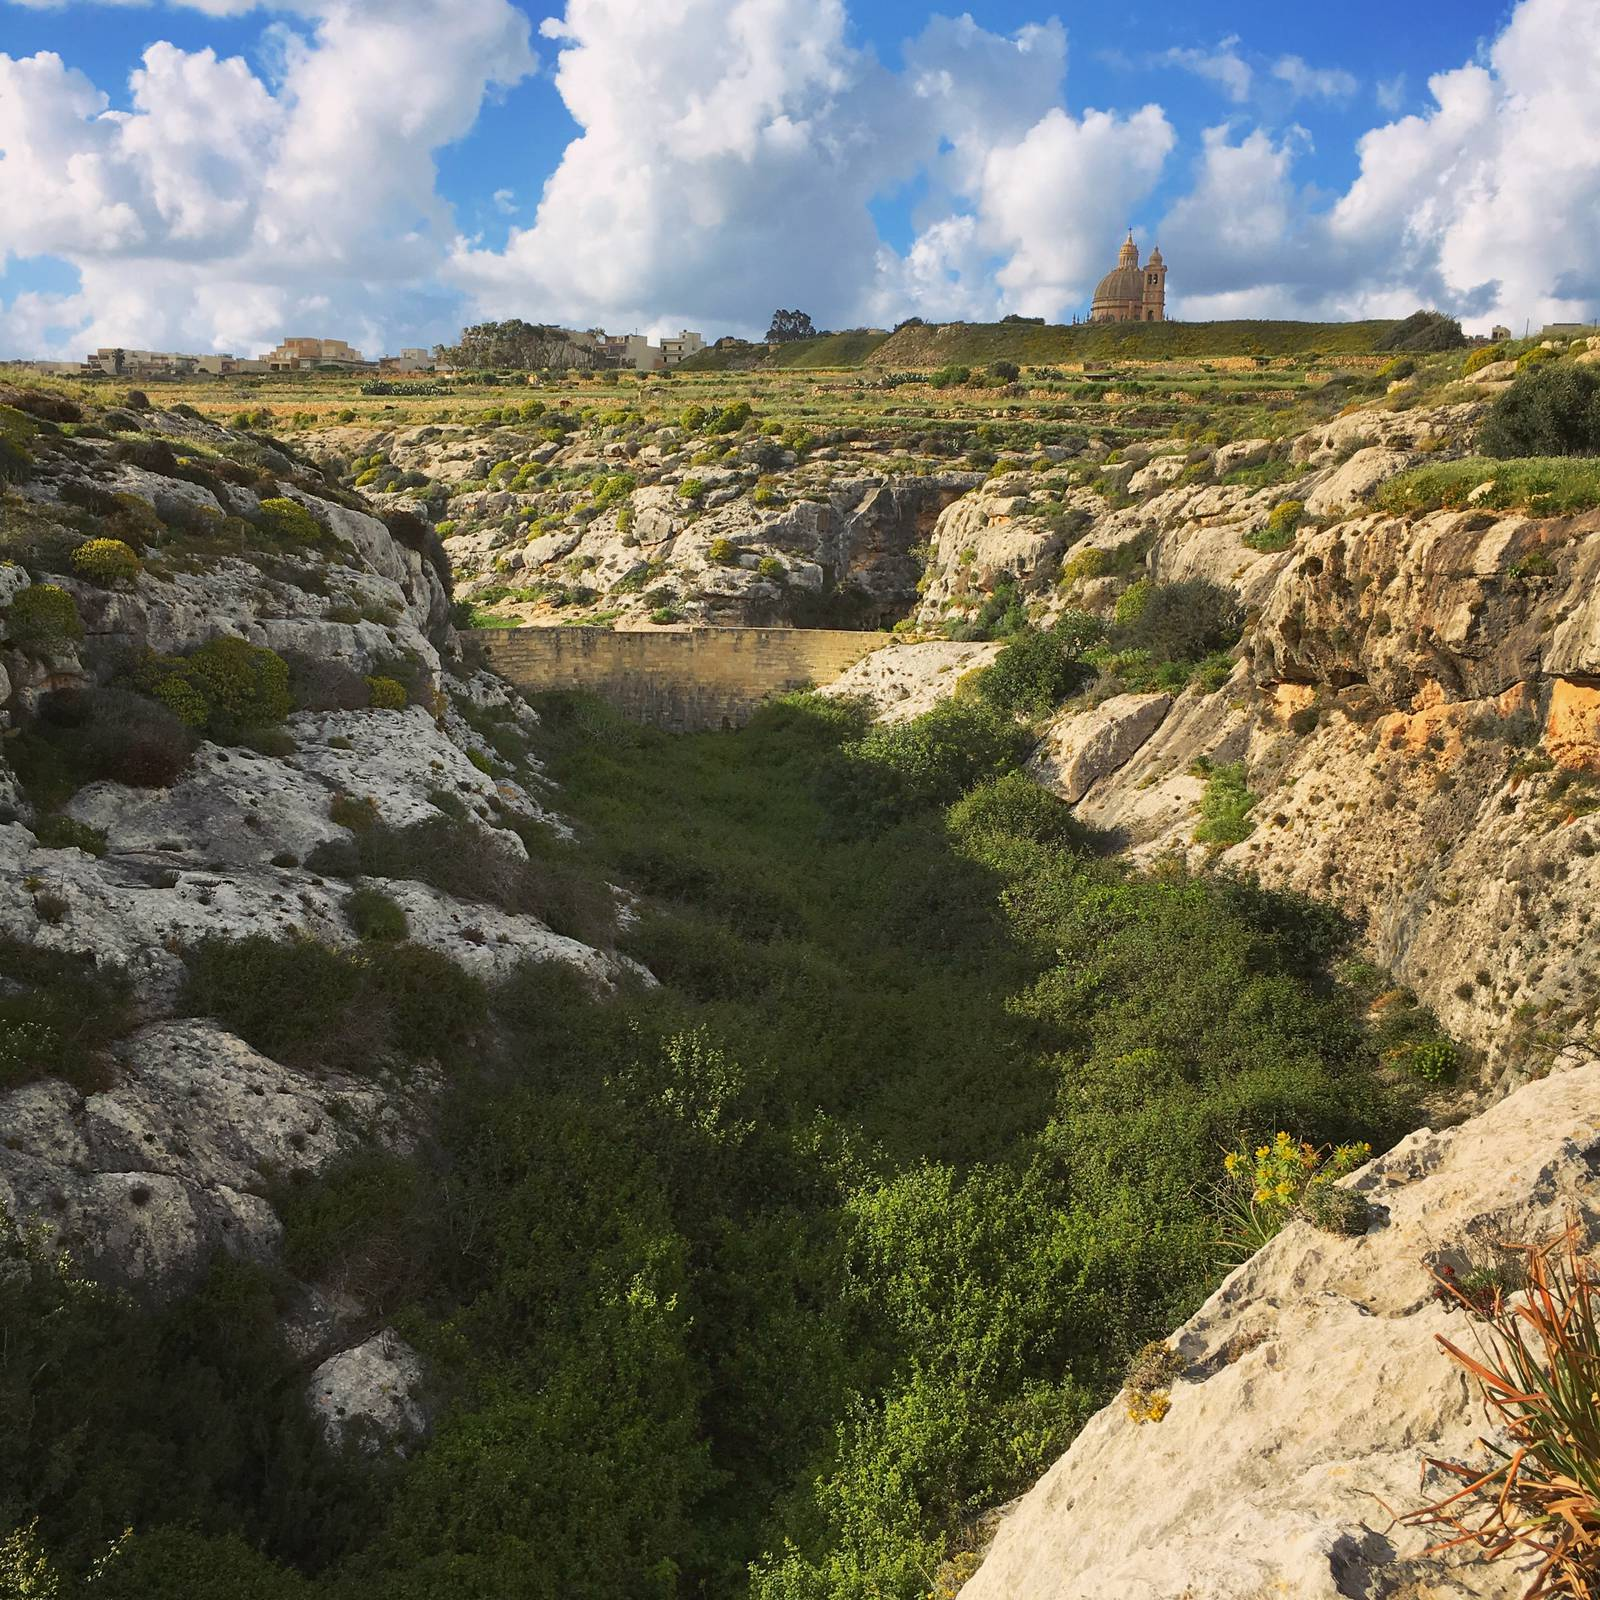 The head of the Mgarr ix-Xini gorge